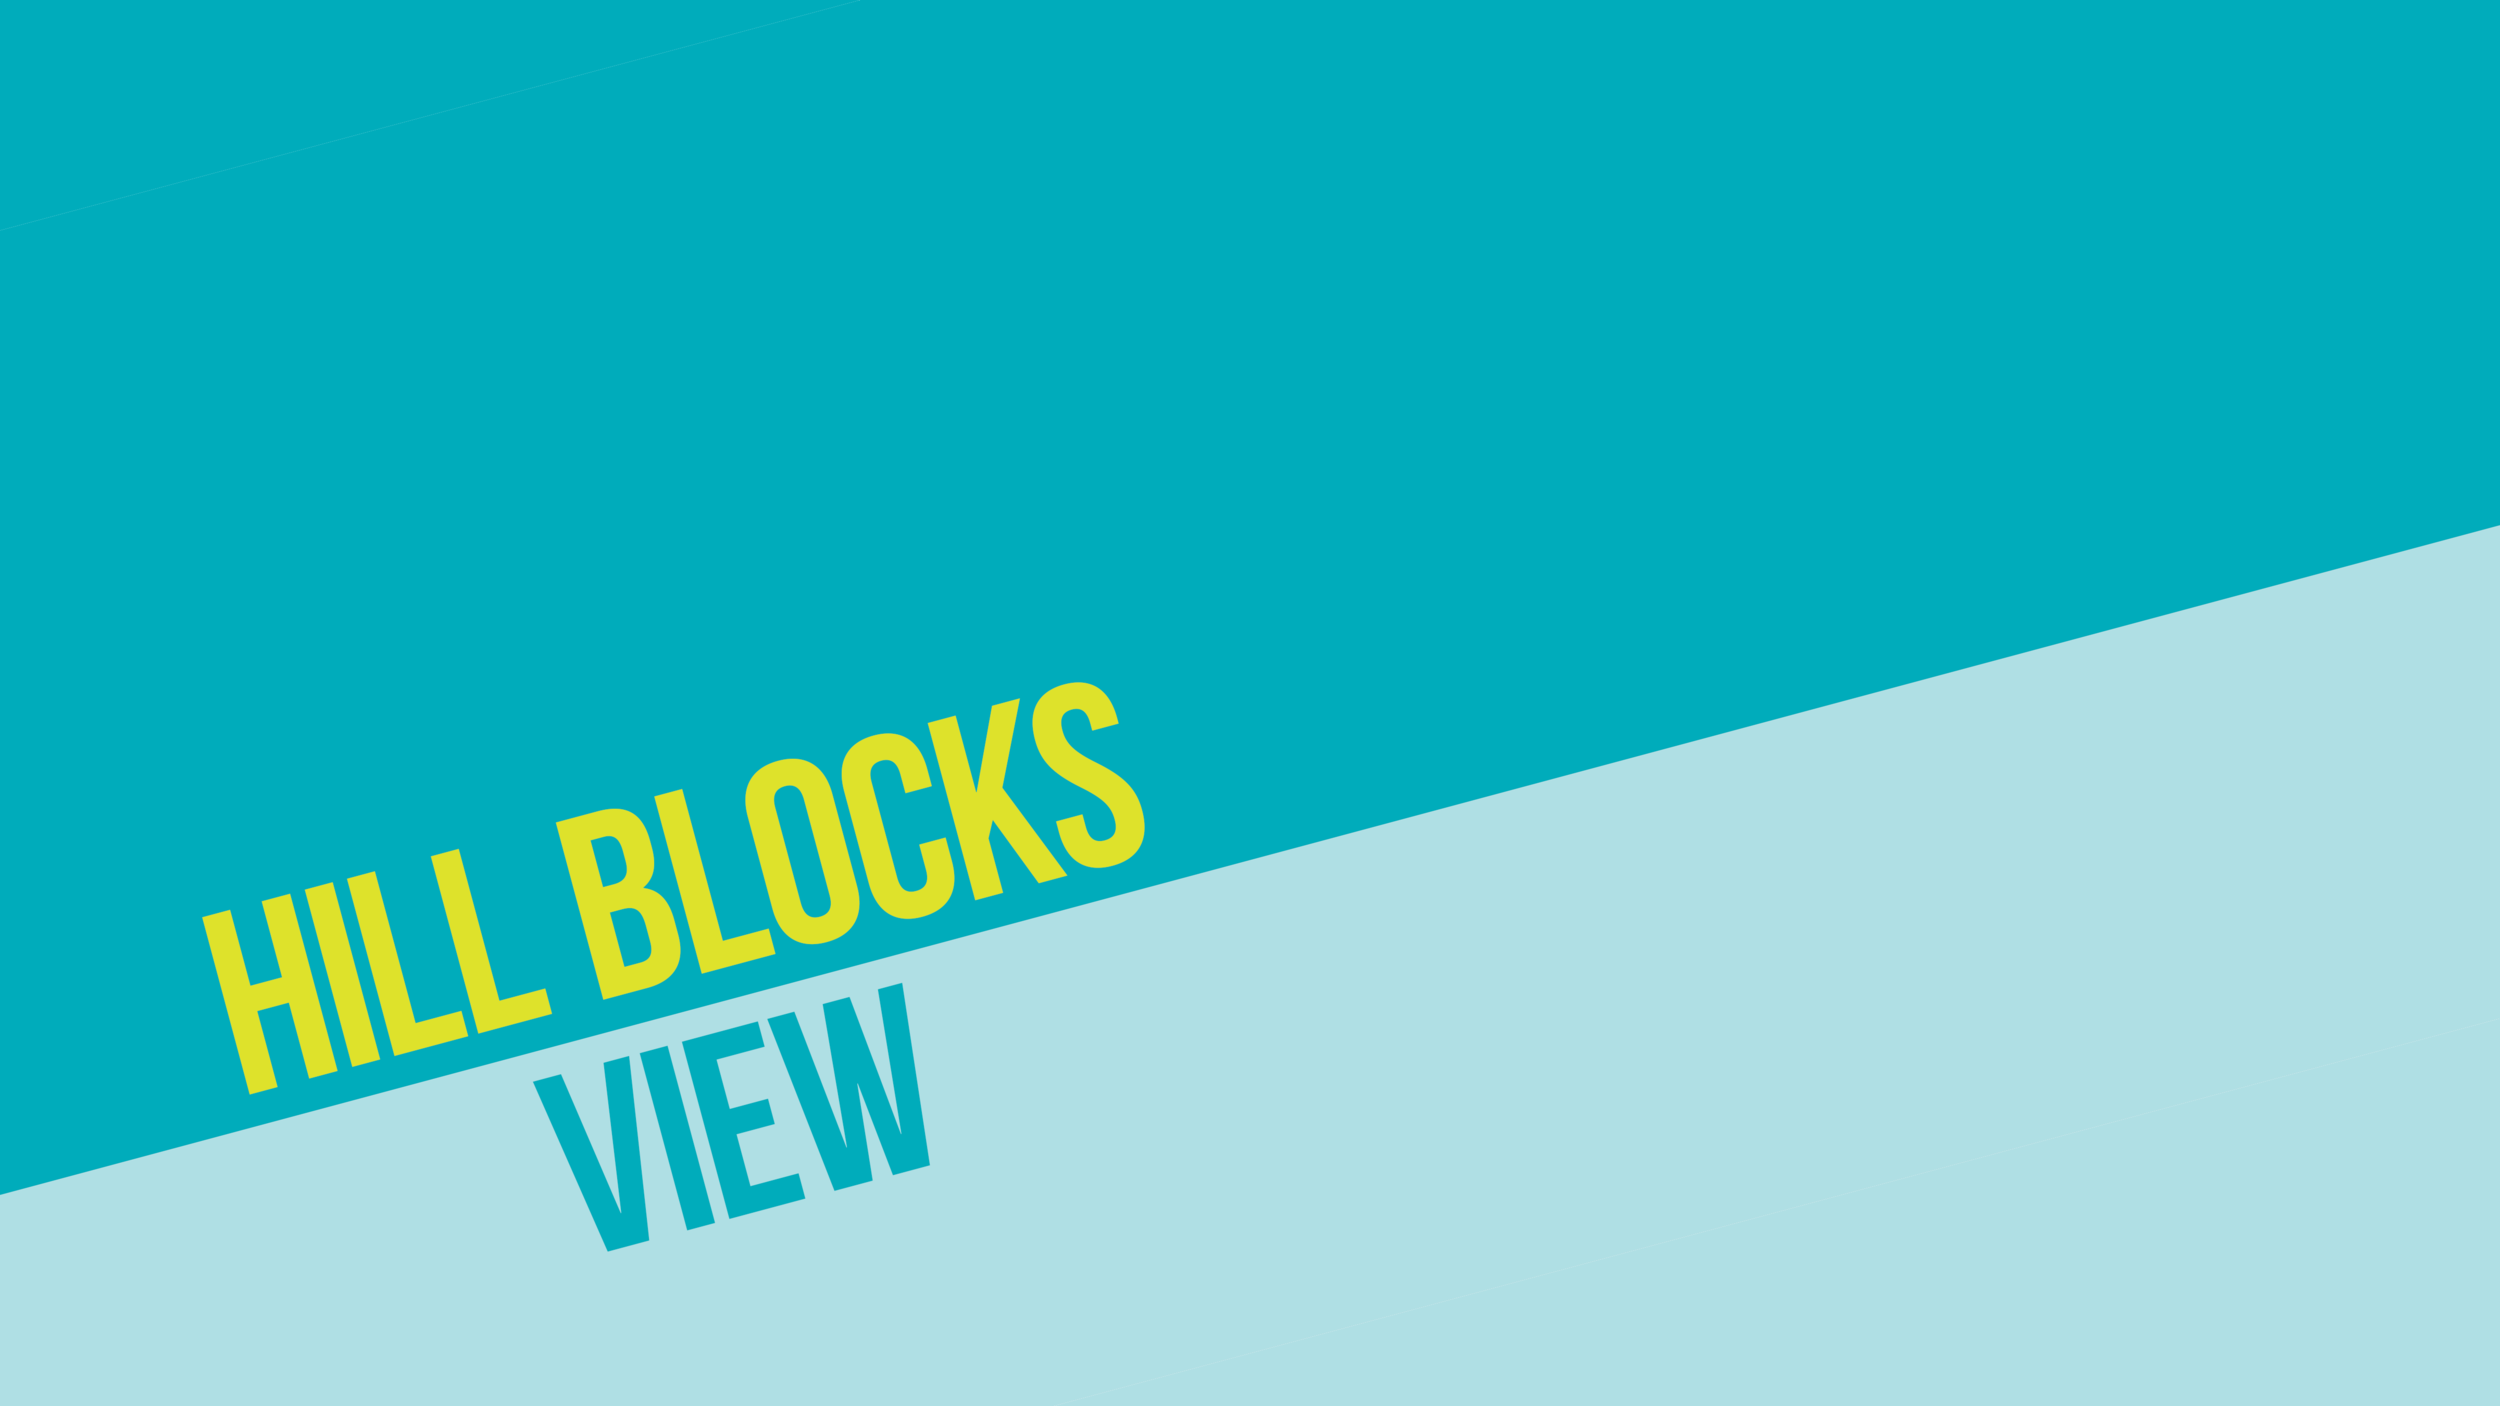 Hill Blocks View (1).png